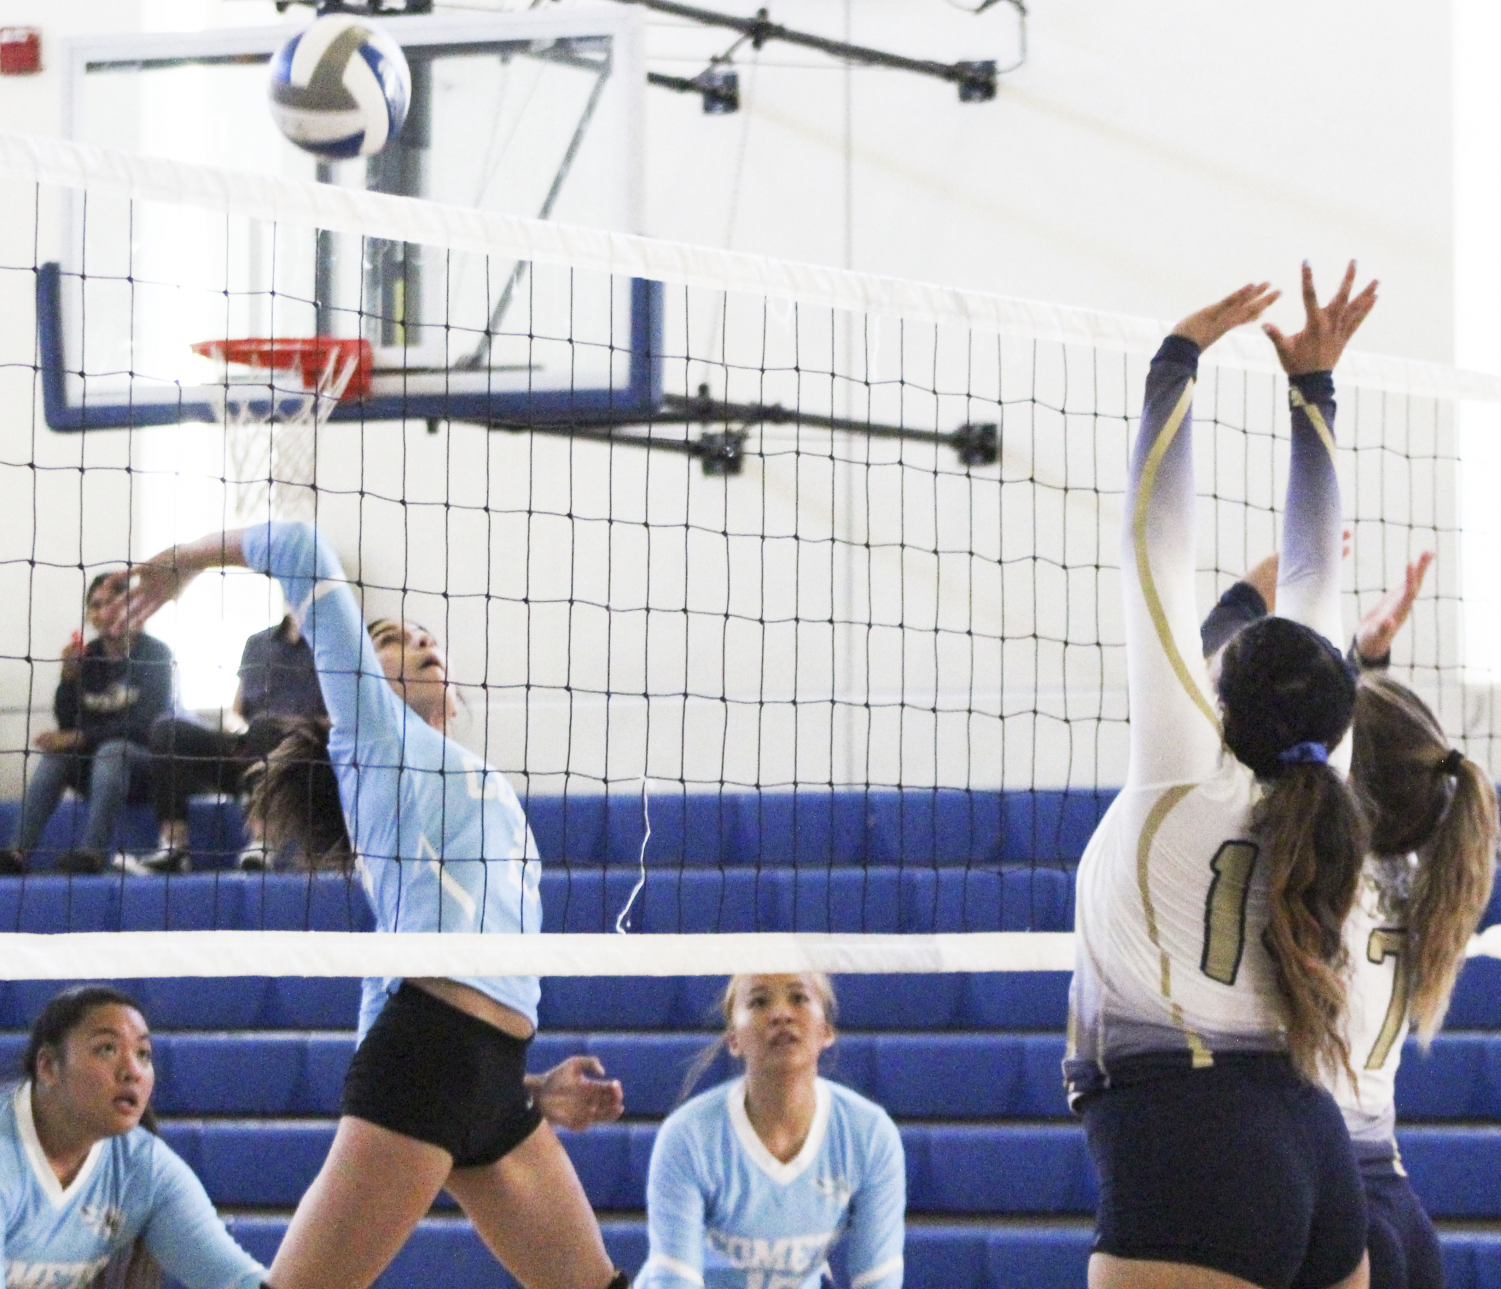 Right side hitter Nadia Thomas (left) spikes the ball over the net in the Comets' first game of the season against Yuba College in the Pinole Middle School Gymnasium on Sept. 18